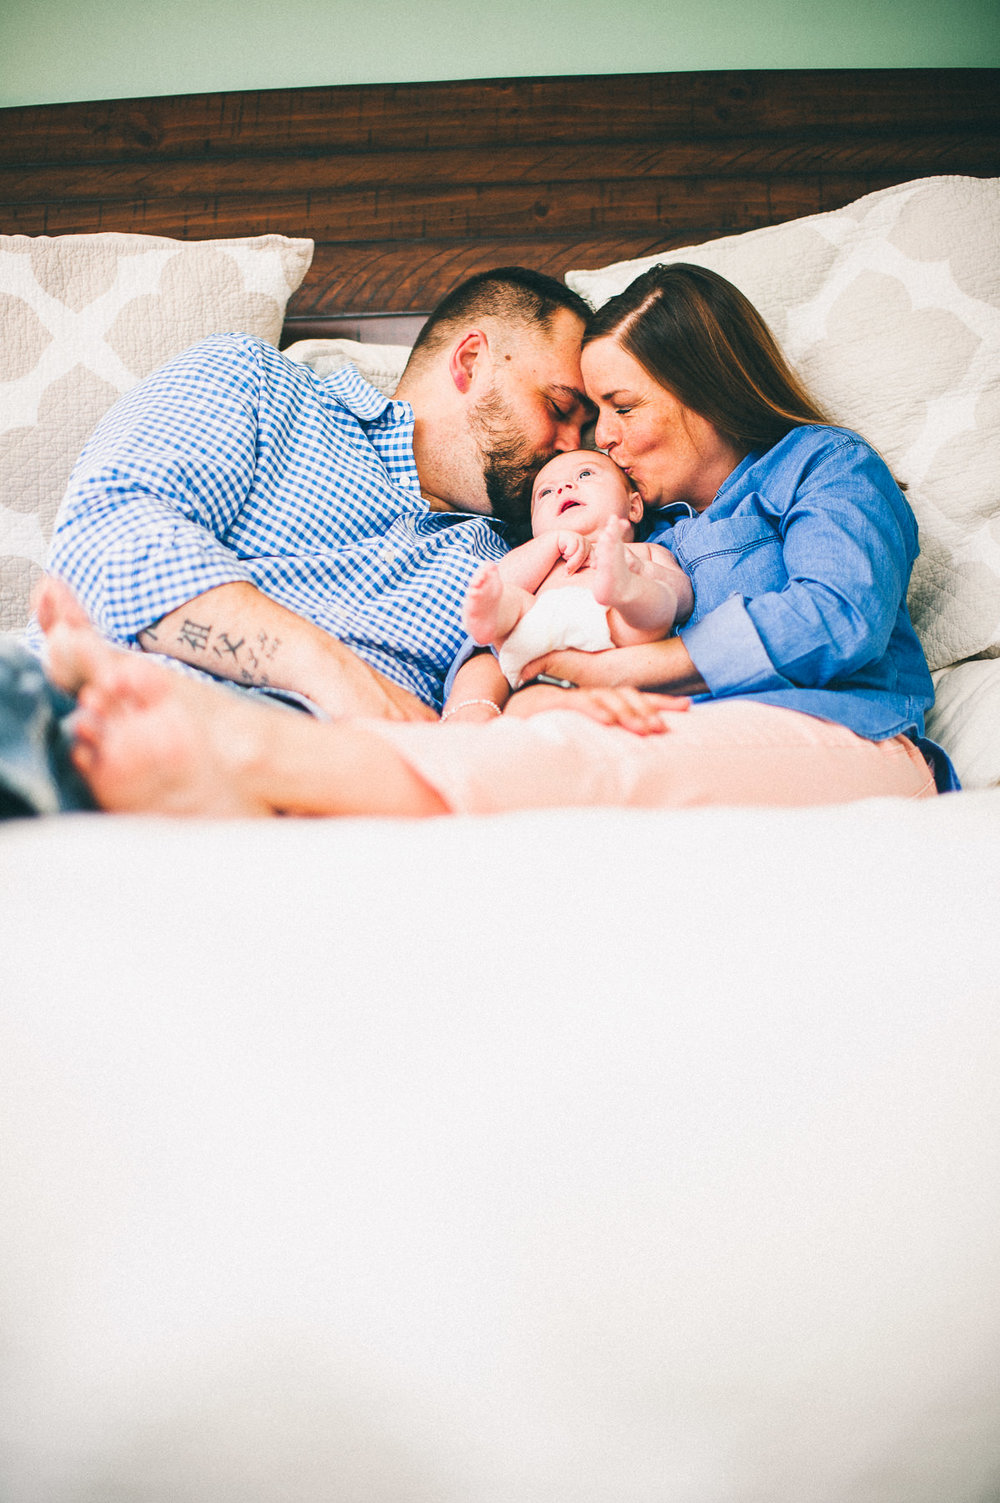 breighton-and-basette-photography-copyrighted-image-blog-croix-newborn-035.jpg